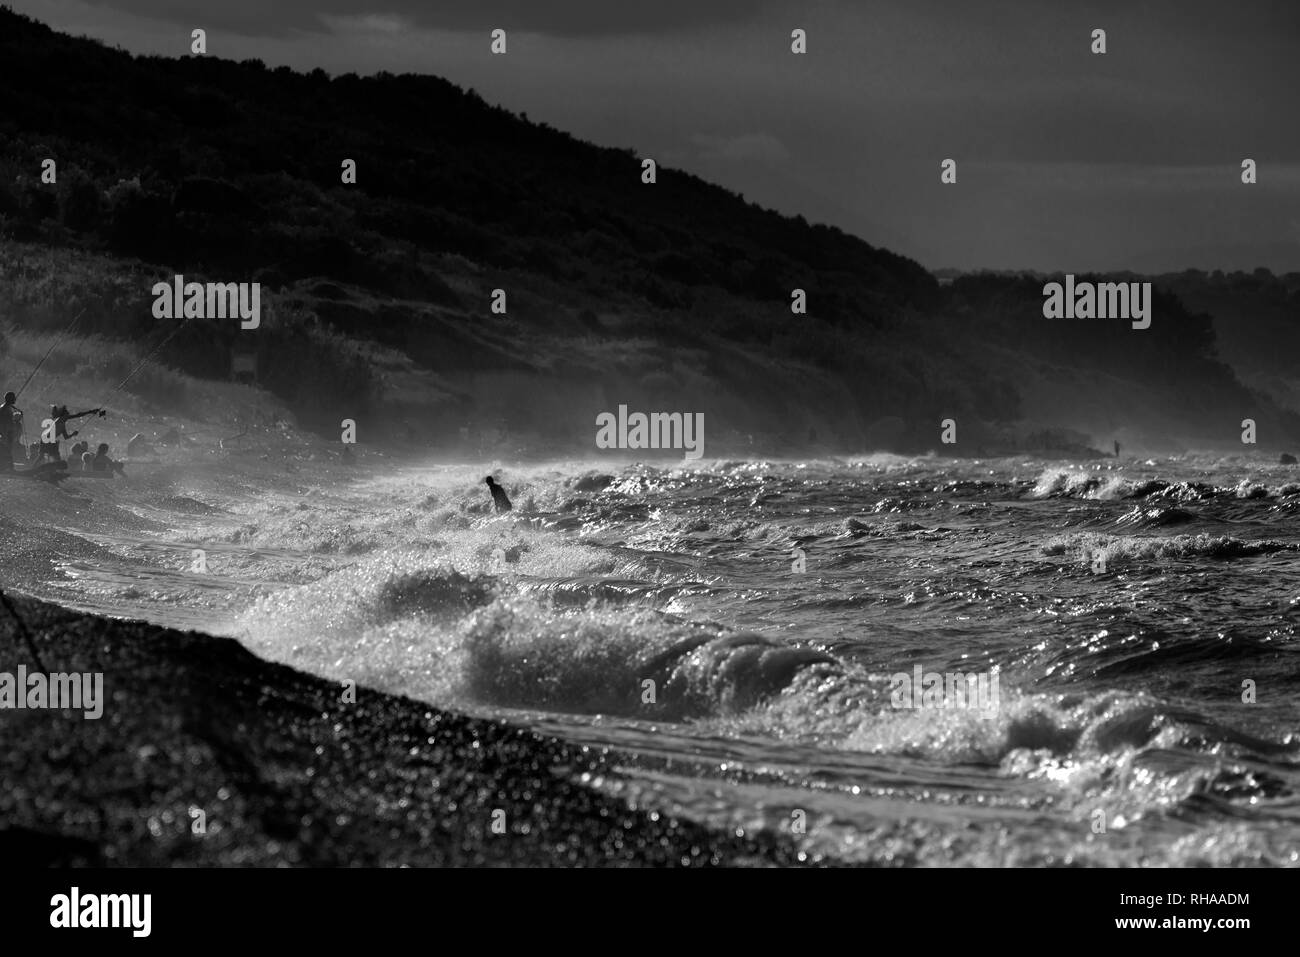 People swimming in the rough sea - Stock Image